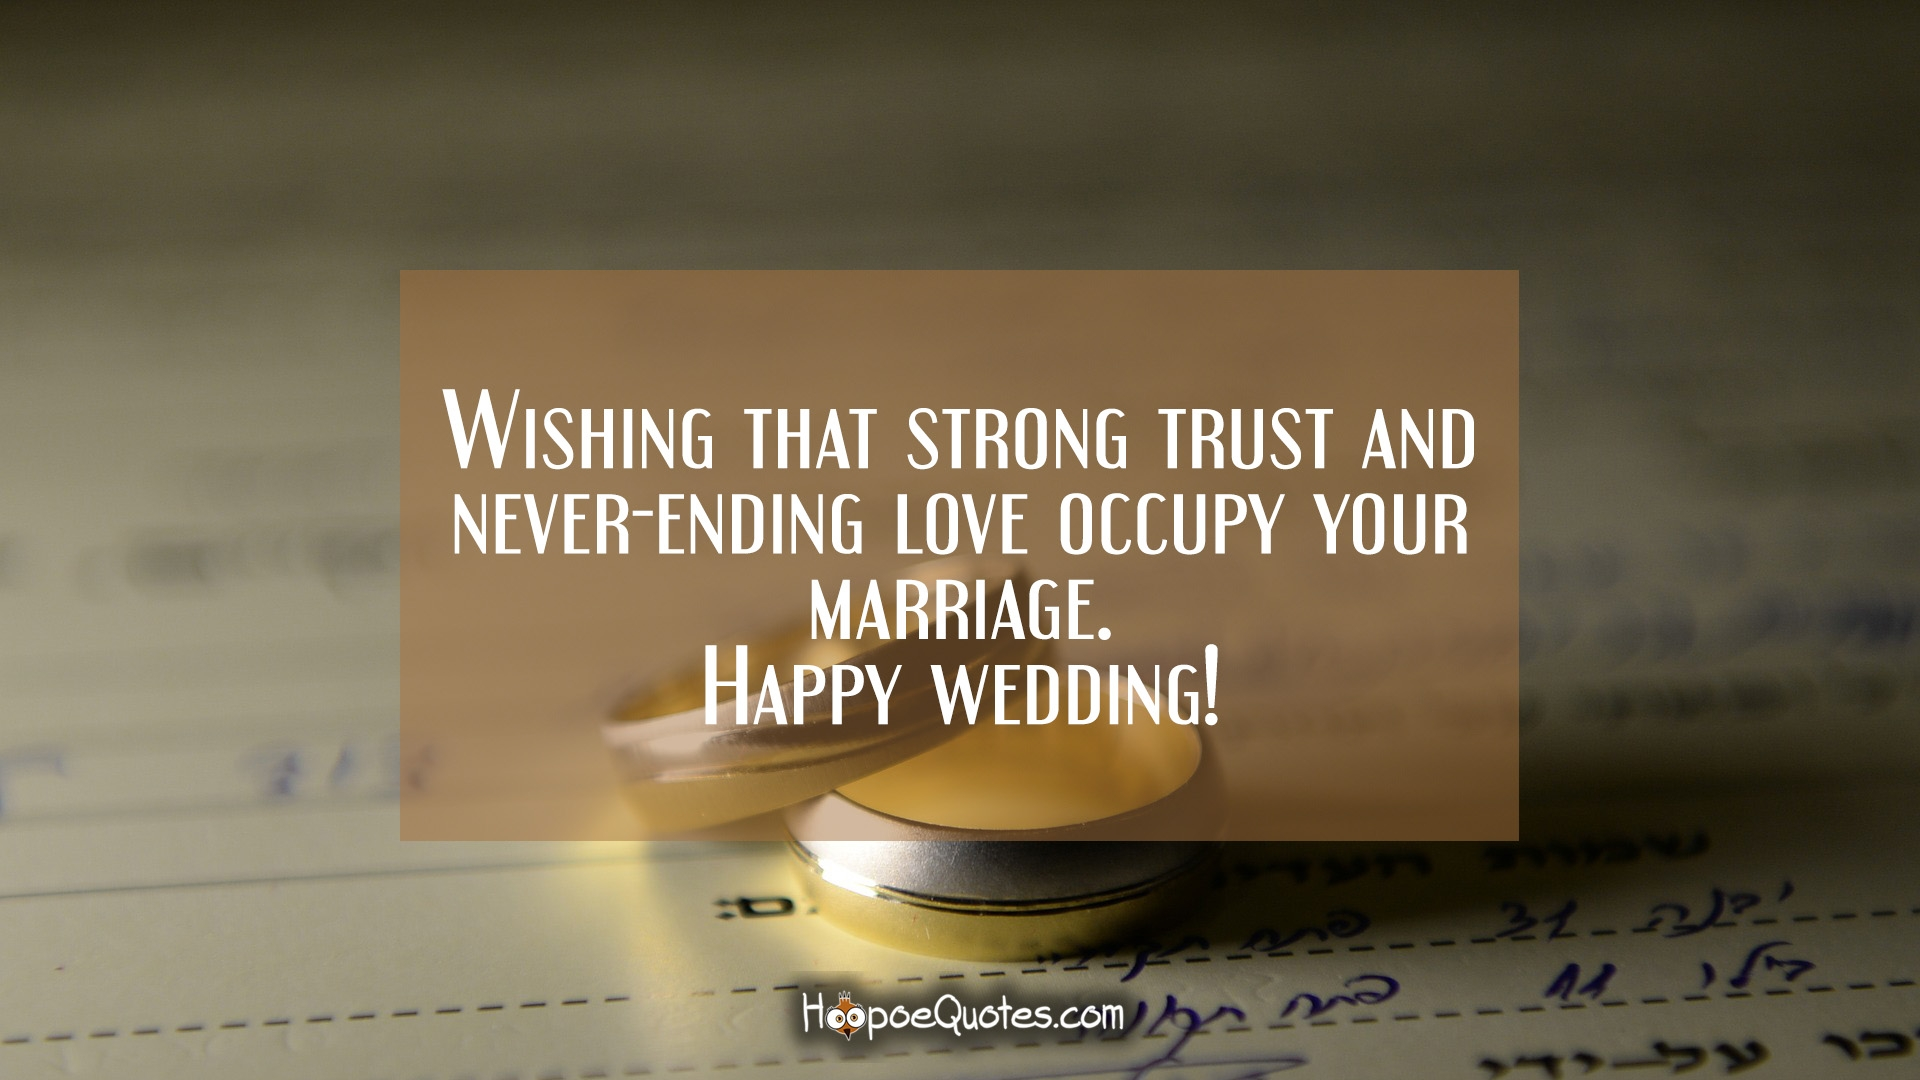 180 Hd Images Wedding Wishes Beautiful Happy Wedding Day And